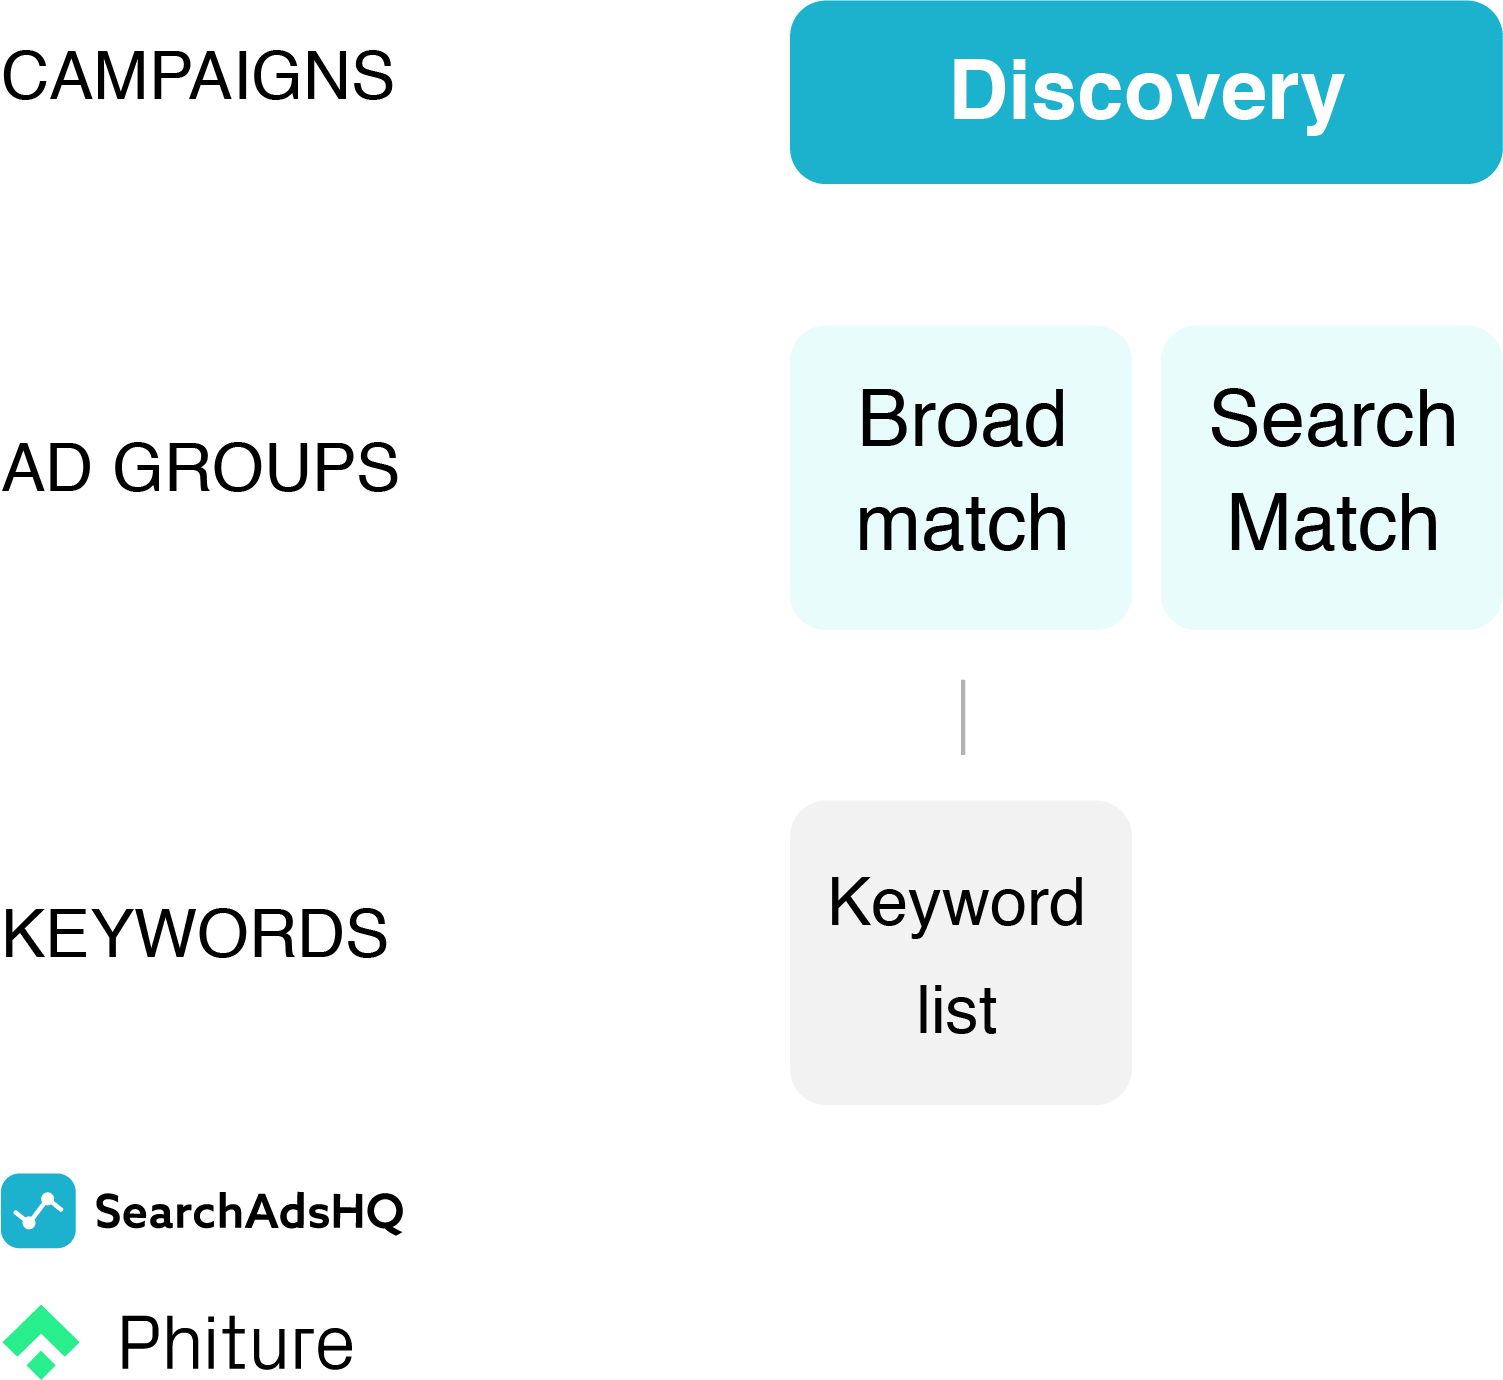 Apple Search Ads account structure - Discovery